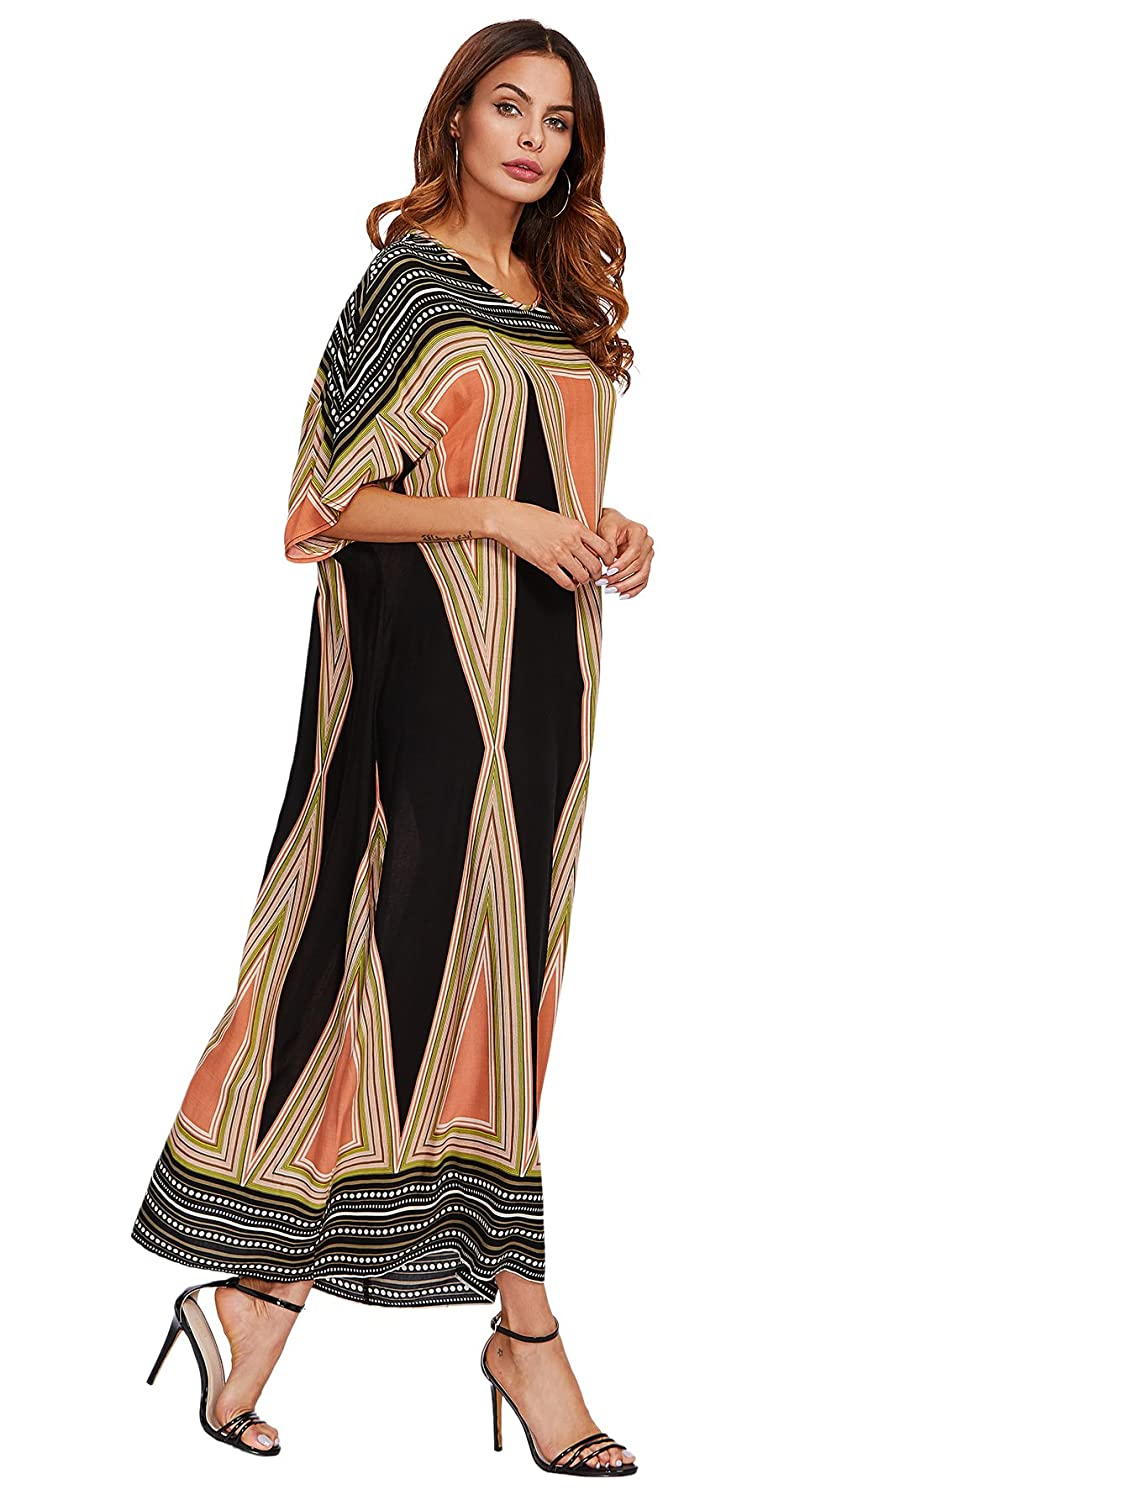 Old Fashioned Dresses | Old Dress Styles Floerns Womens Short Sleeve Oversized Maxi Kaftan Dress $17.99 AT vintagedancer.com